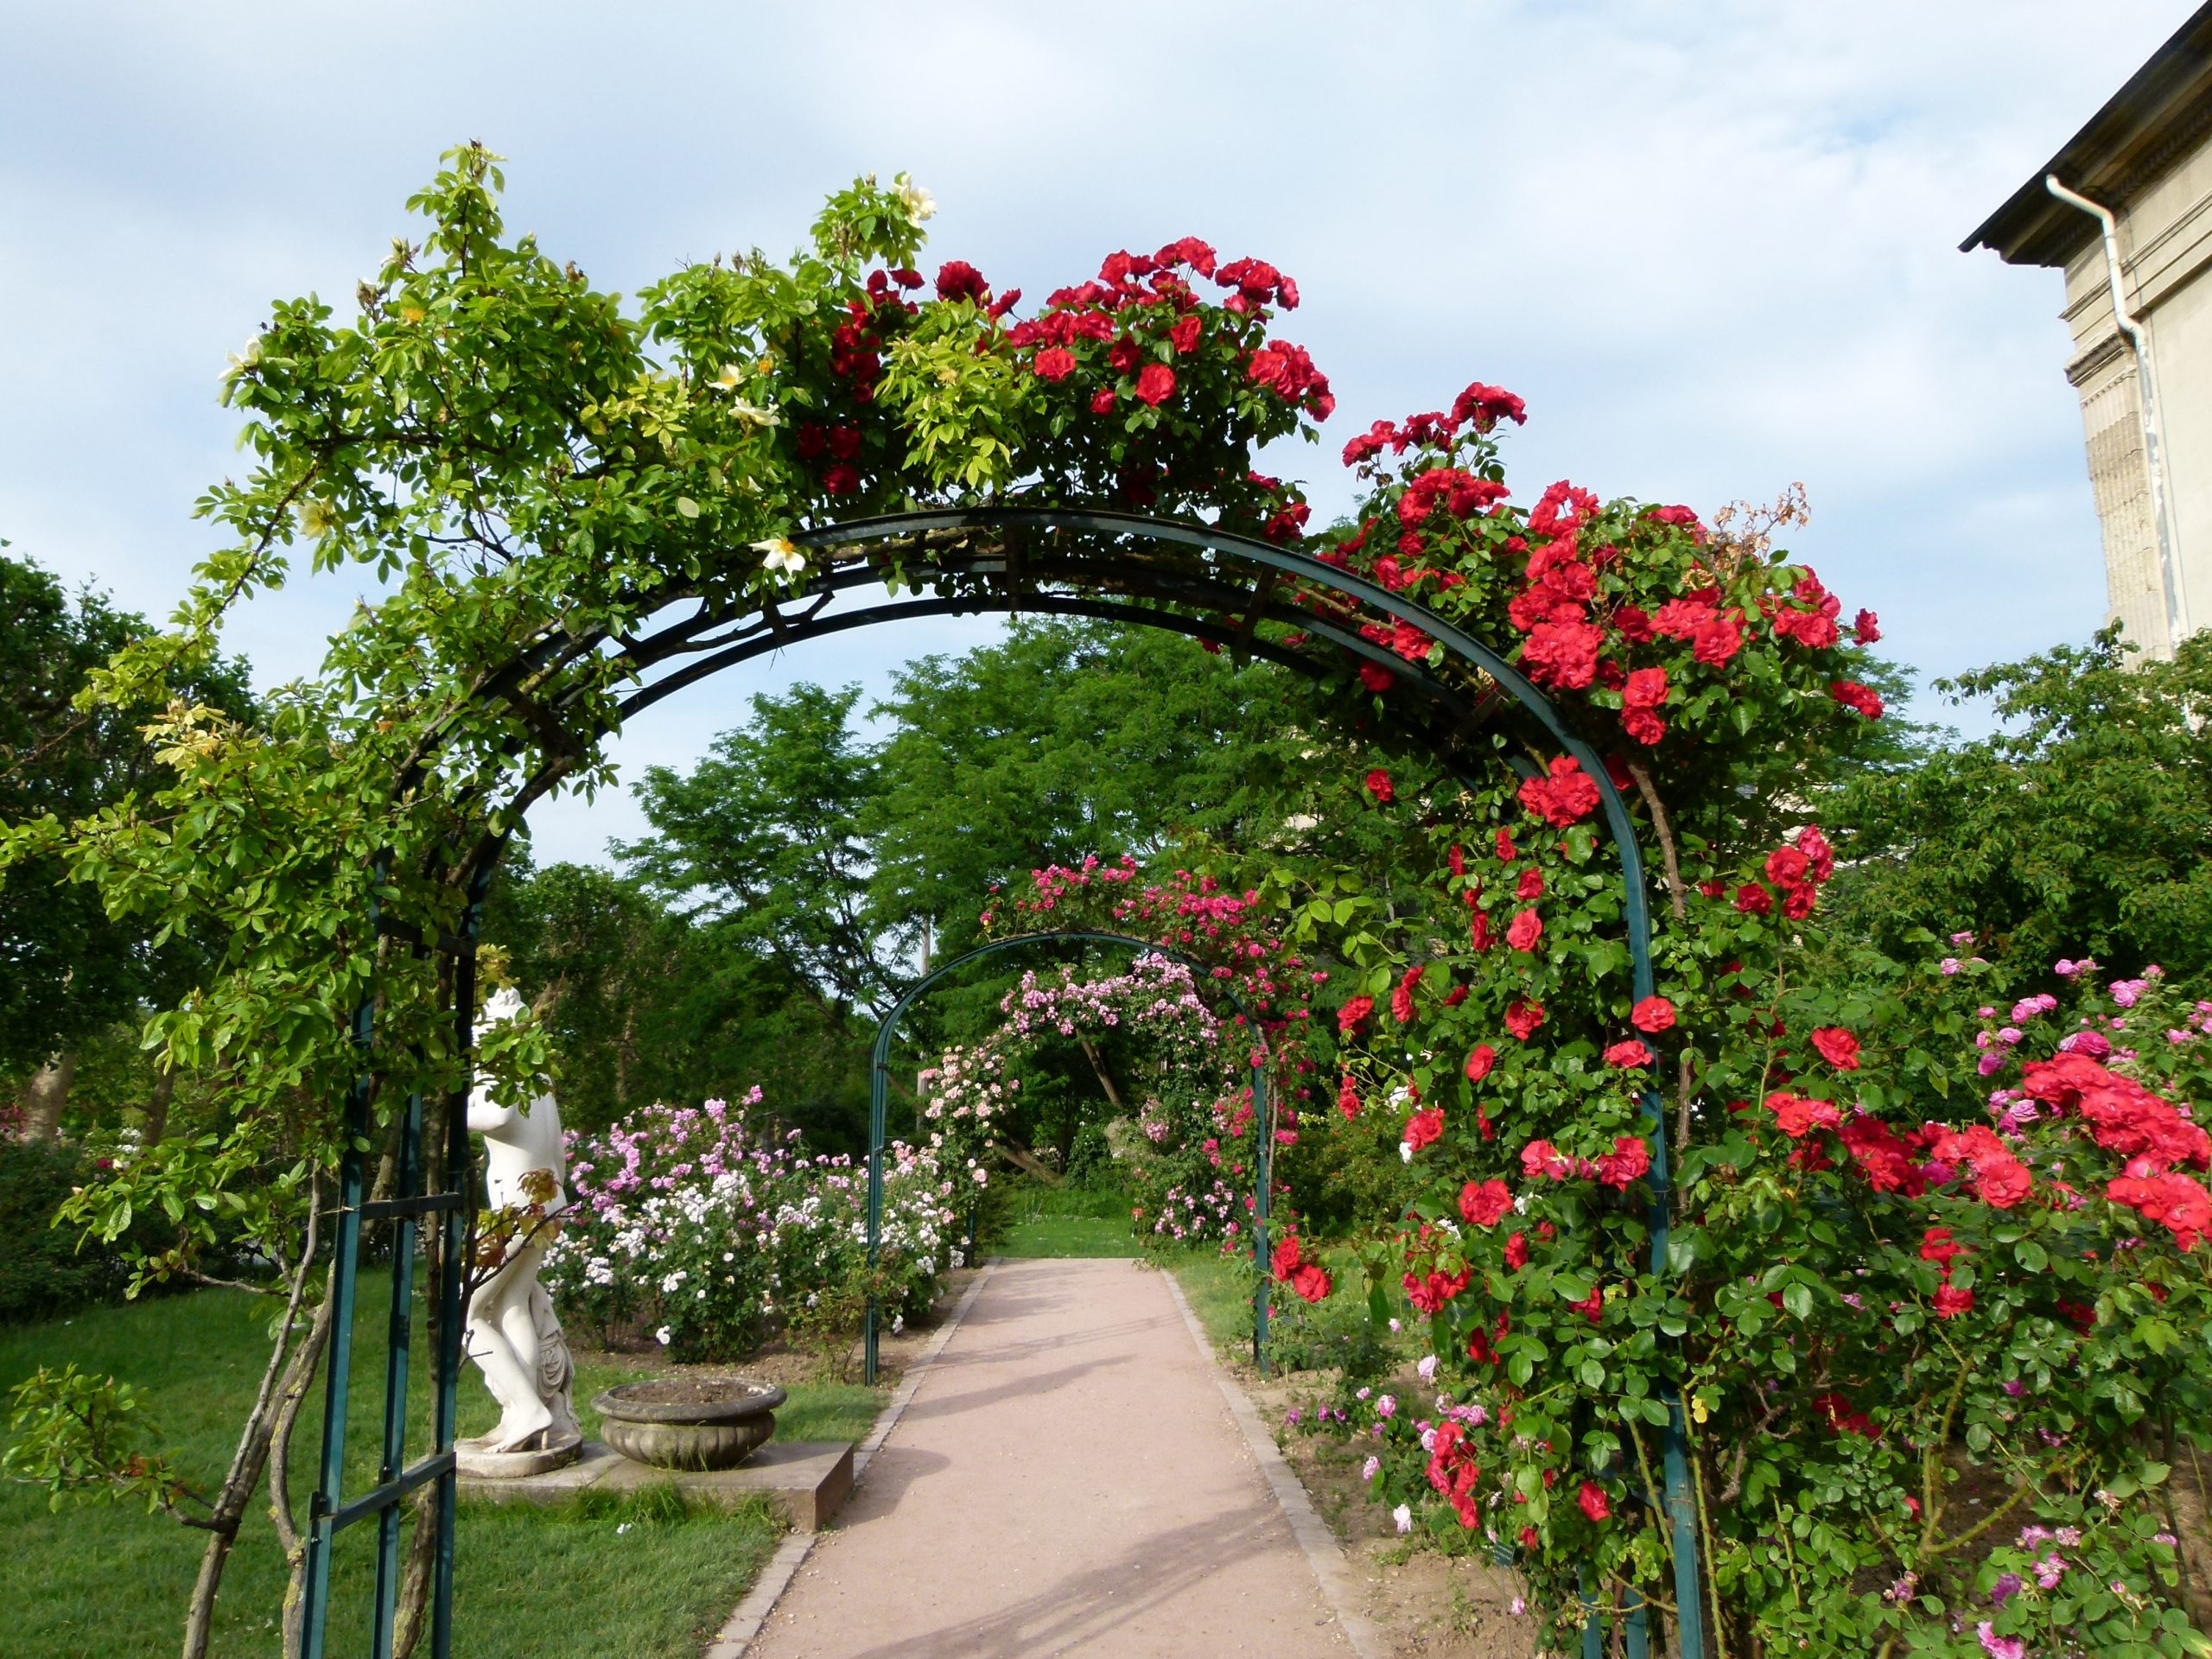 Jardin Rose Arch Gardening Geconsulting.cl serapportantà Arches De Jardin